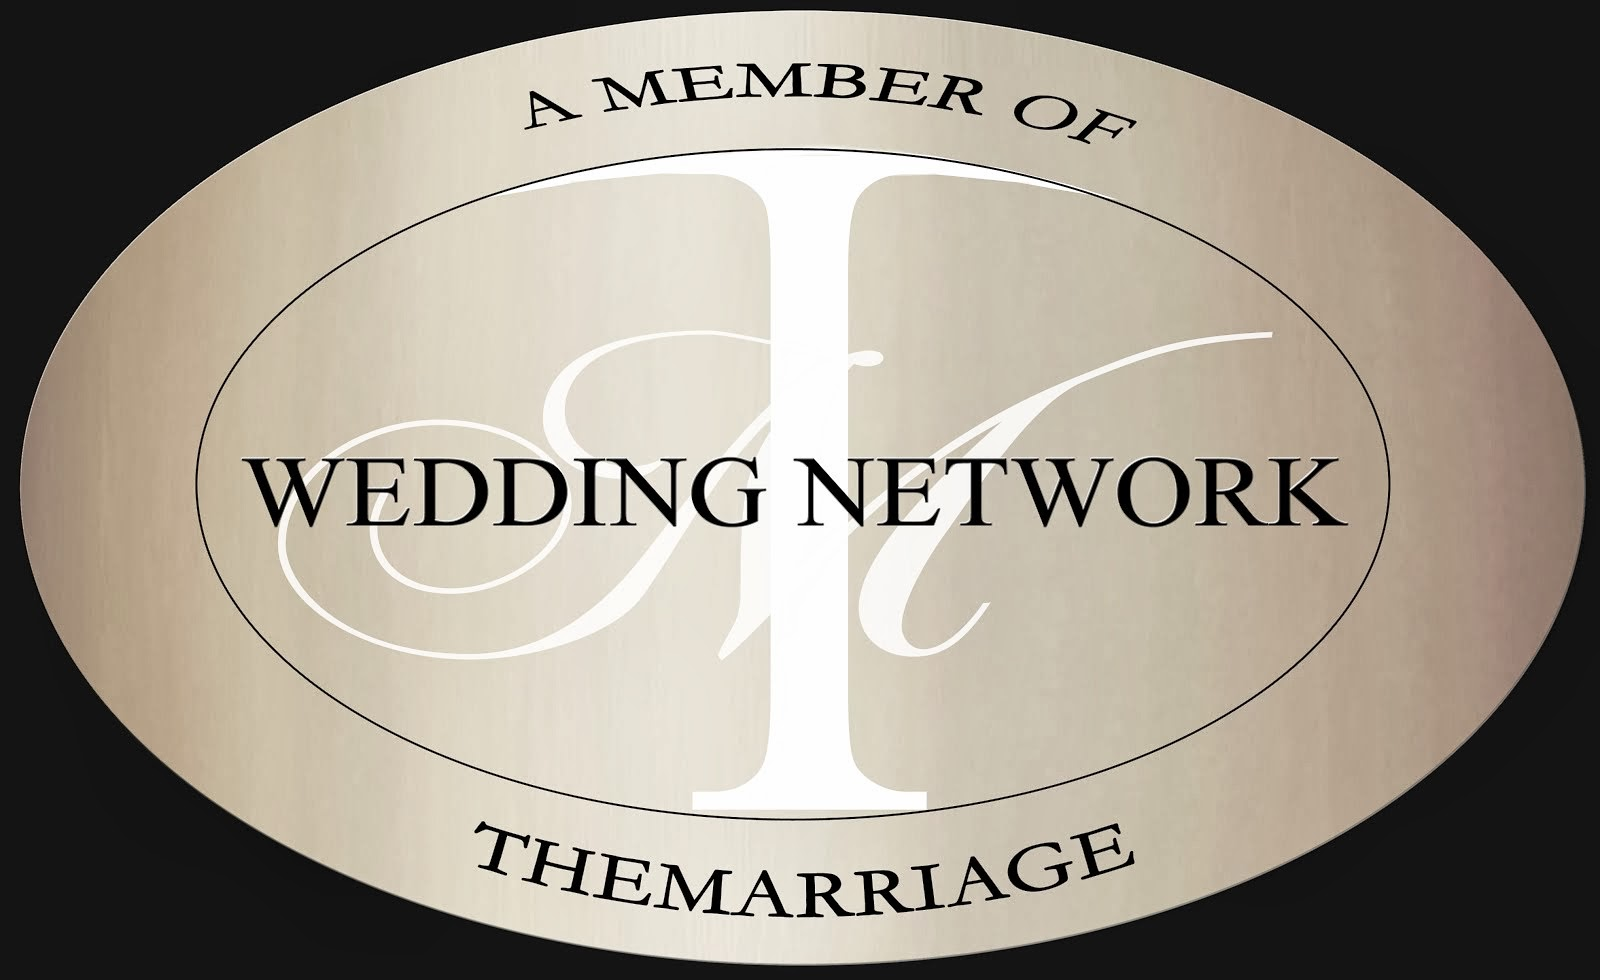 Member of Wedding network